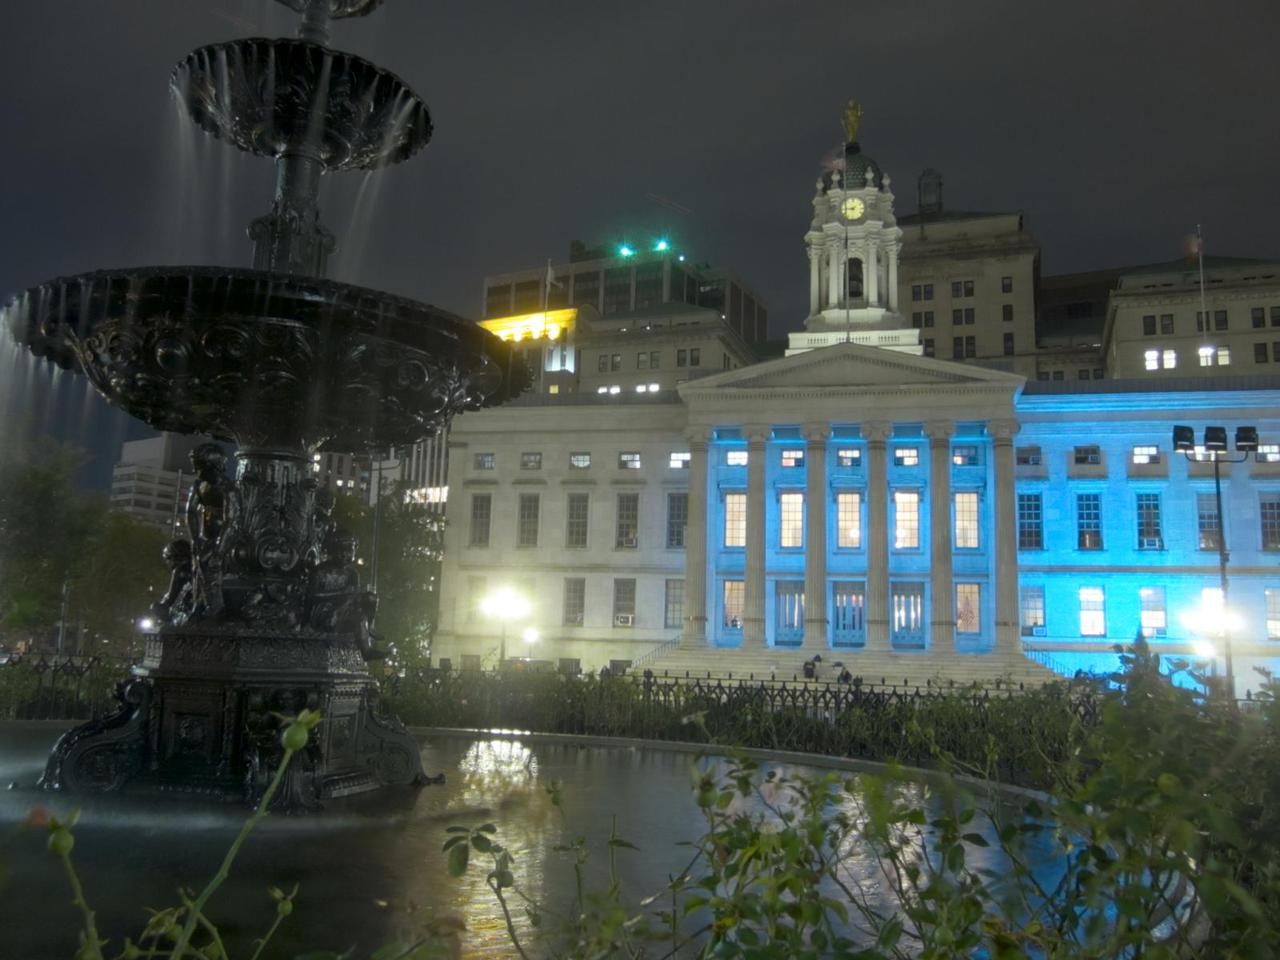 brooklyn borough hall at night, with a fountain in the foreground